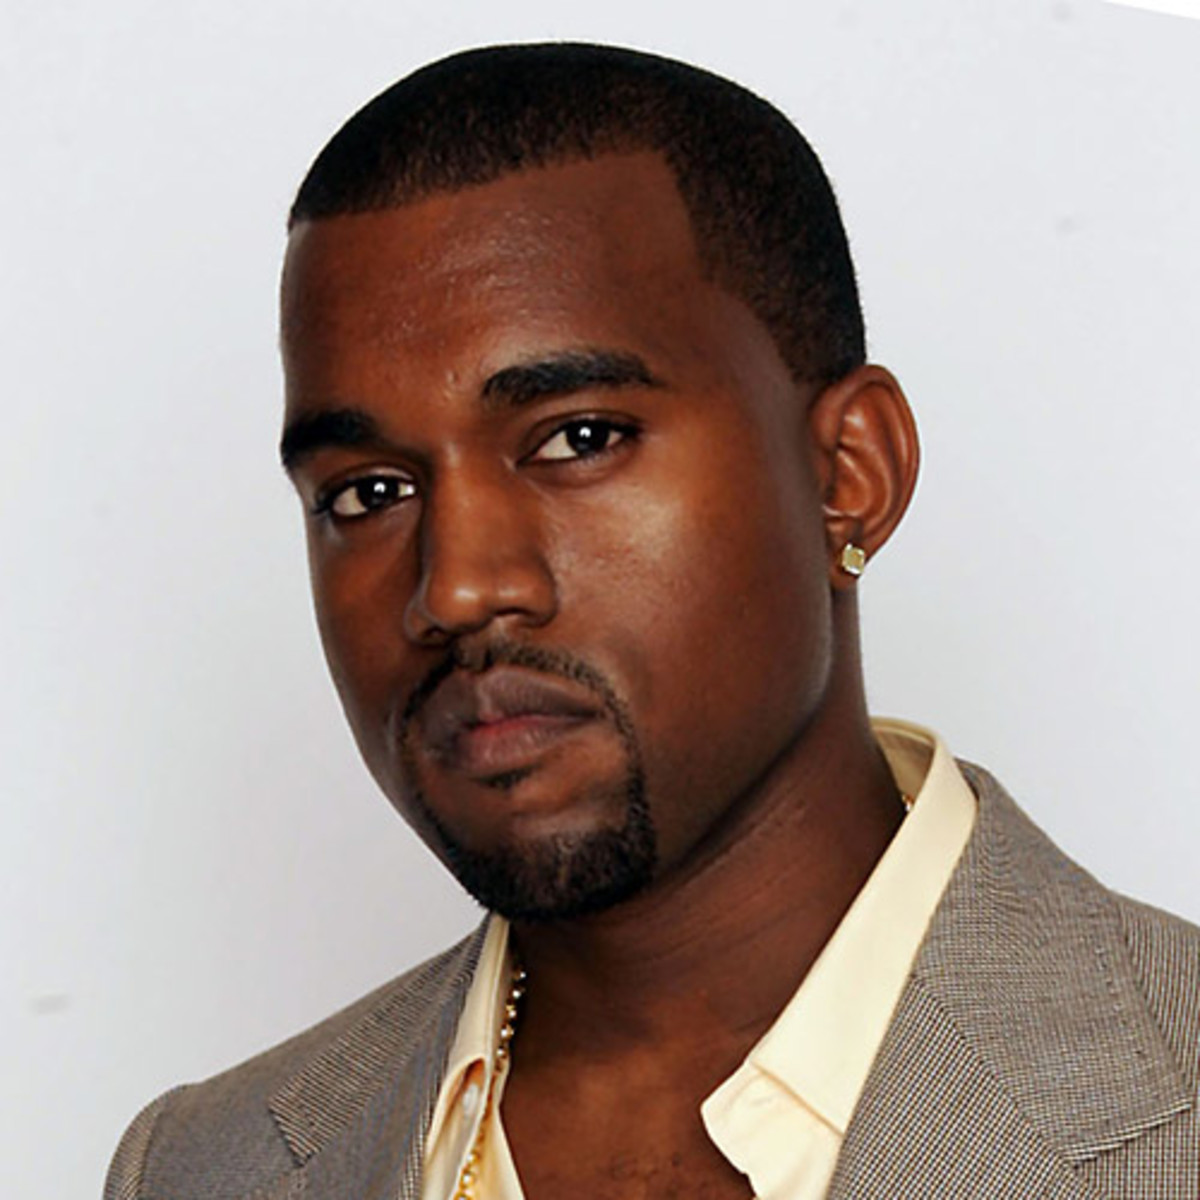 kanye west - photo #25